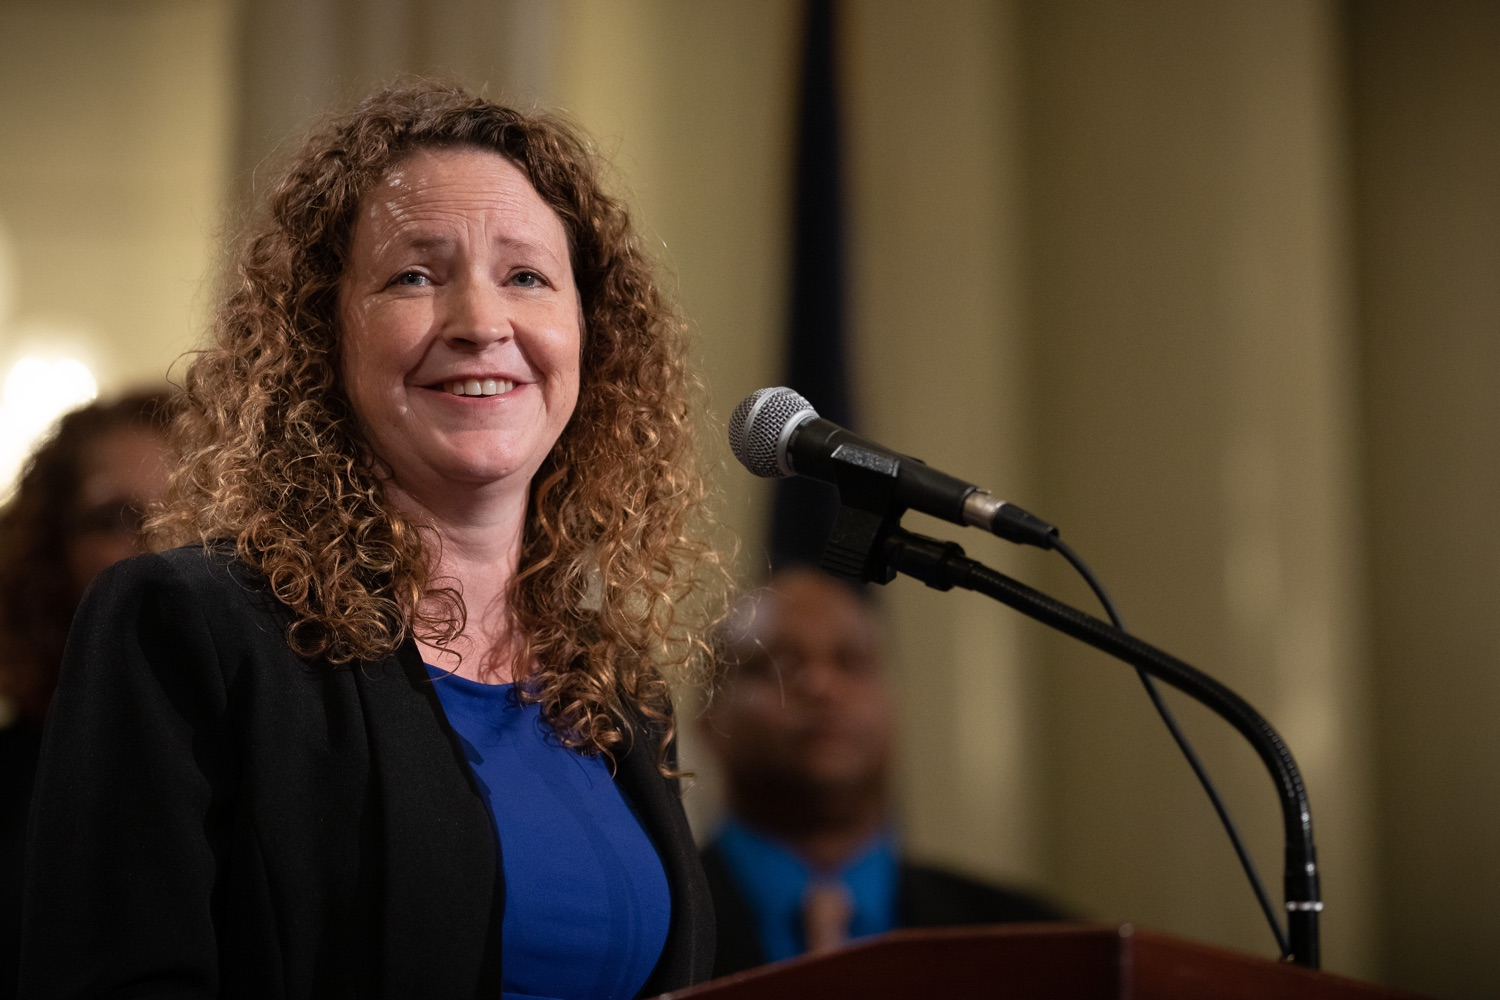 """<a href=""""http://filesource.abacast.com/commonwealthofpa/photo/17601_gov_right_on_crime_dz_010.jpg"""" target=""""_blank"""">⇣Download Photo<br></a>Carrie Pettus-Davis speaking at the event. Governor Tom Wolf was joined by Deputy Secretary of Corrections Christian Stephens and national criminal justice reform advocates today in the Capitol Rotunda to push for commonsense probation reforms that address probation sentences and probation lengths.  Harrisburg, PA  November 18, 2019"""